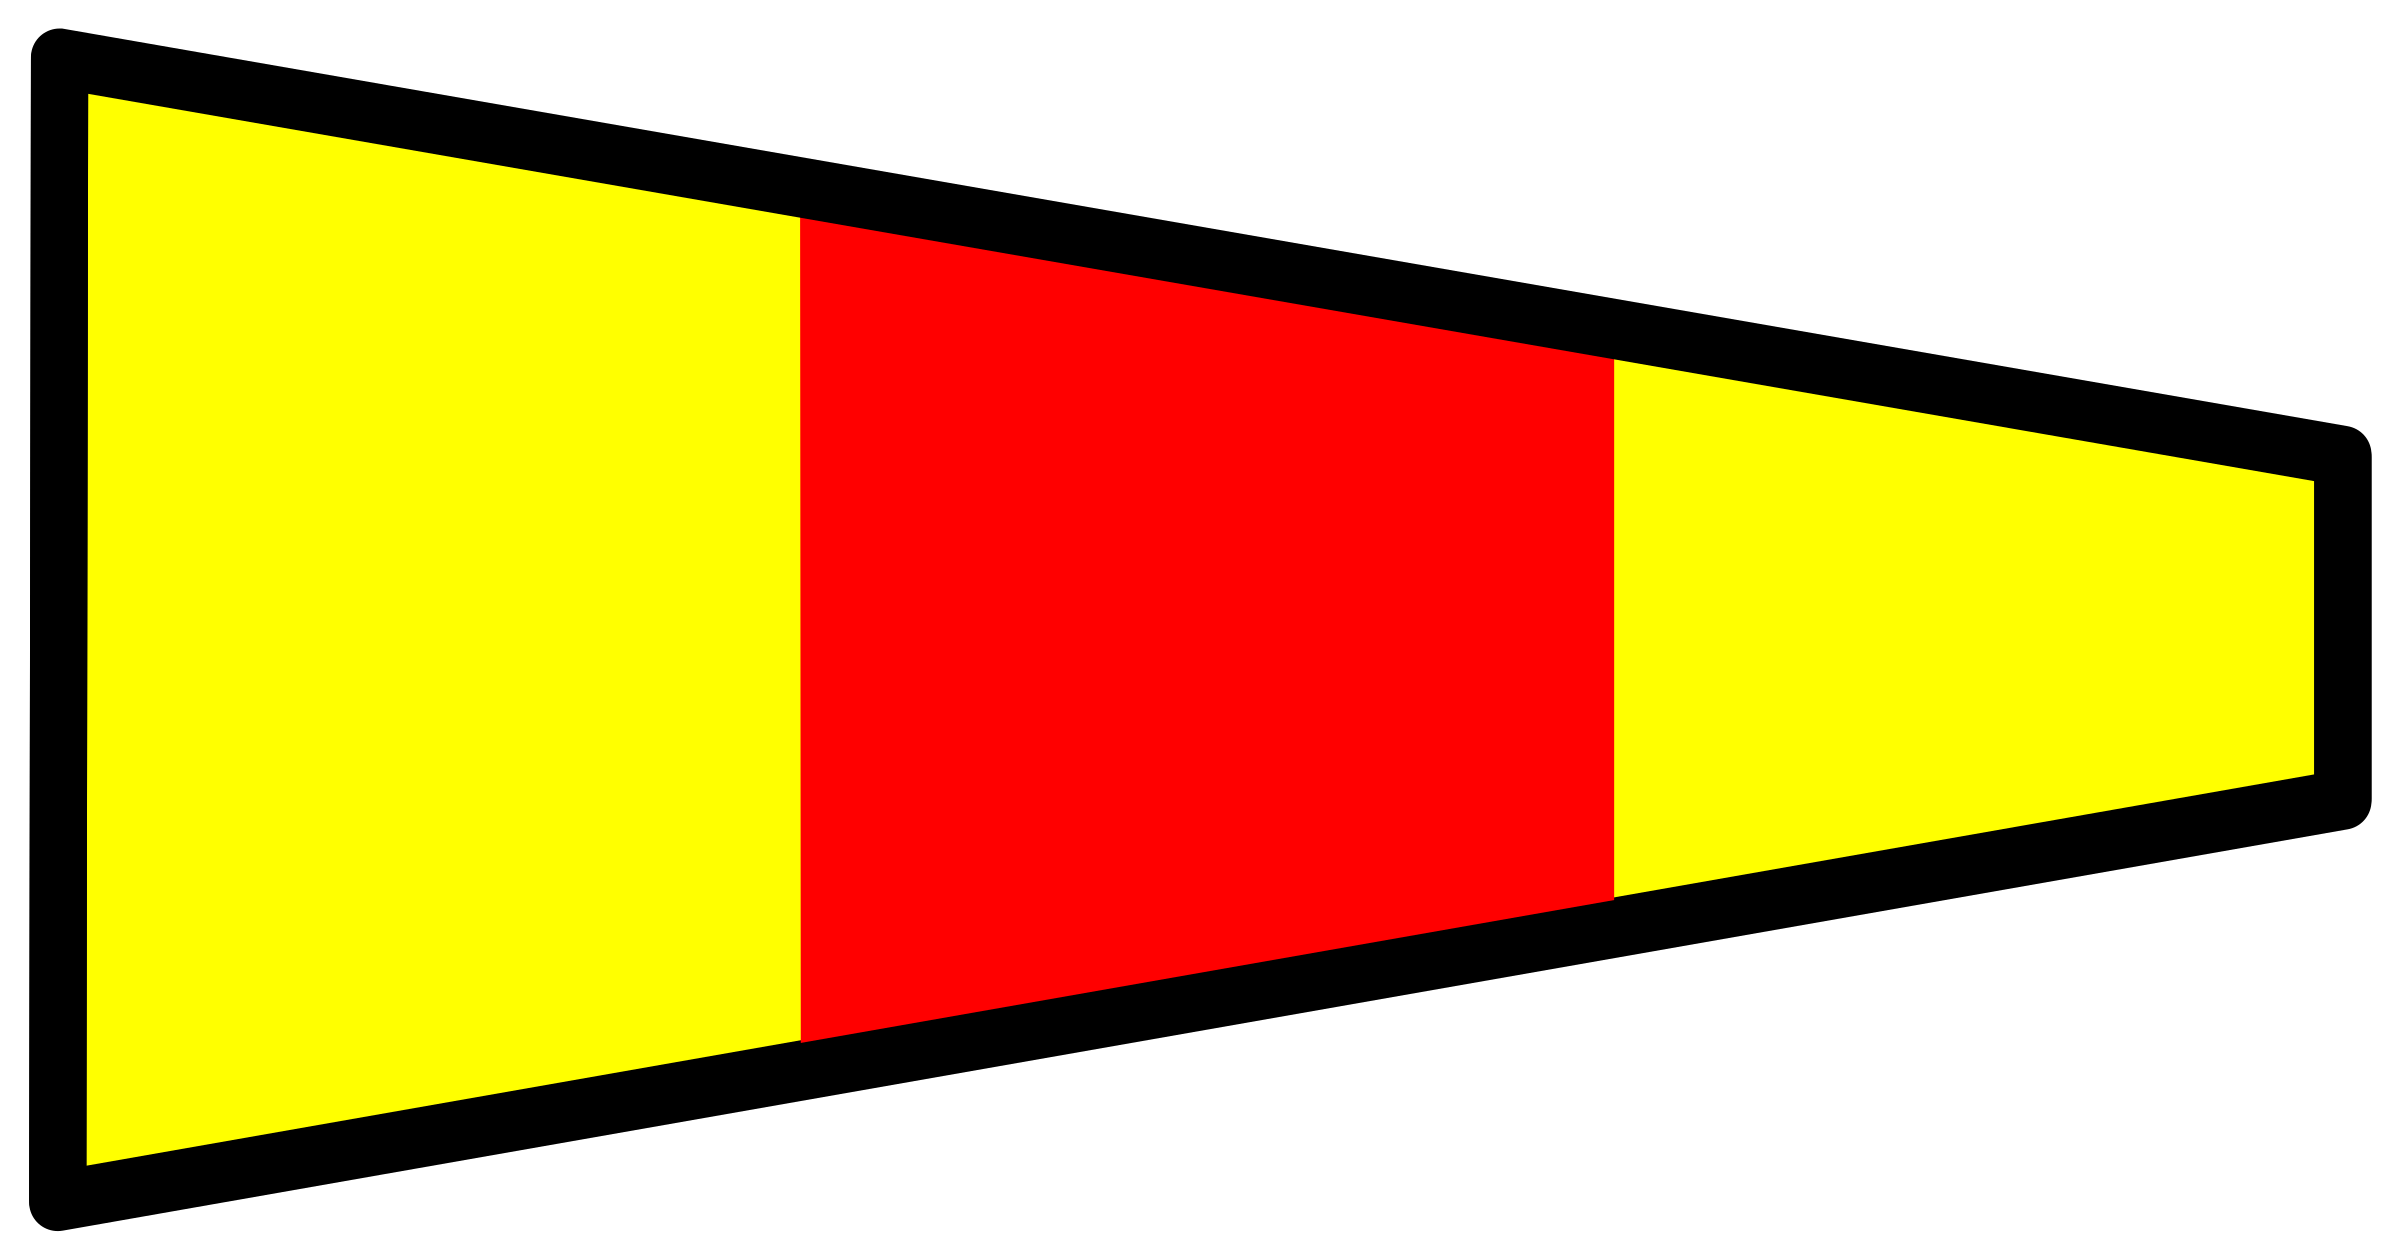 signal flag 0 by Anonymous